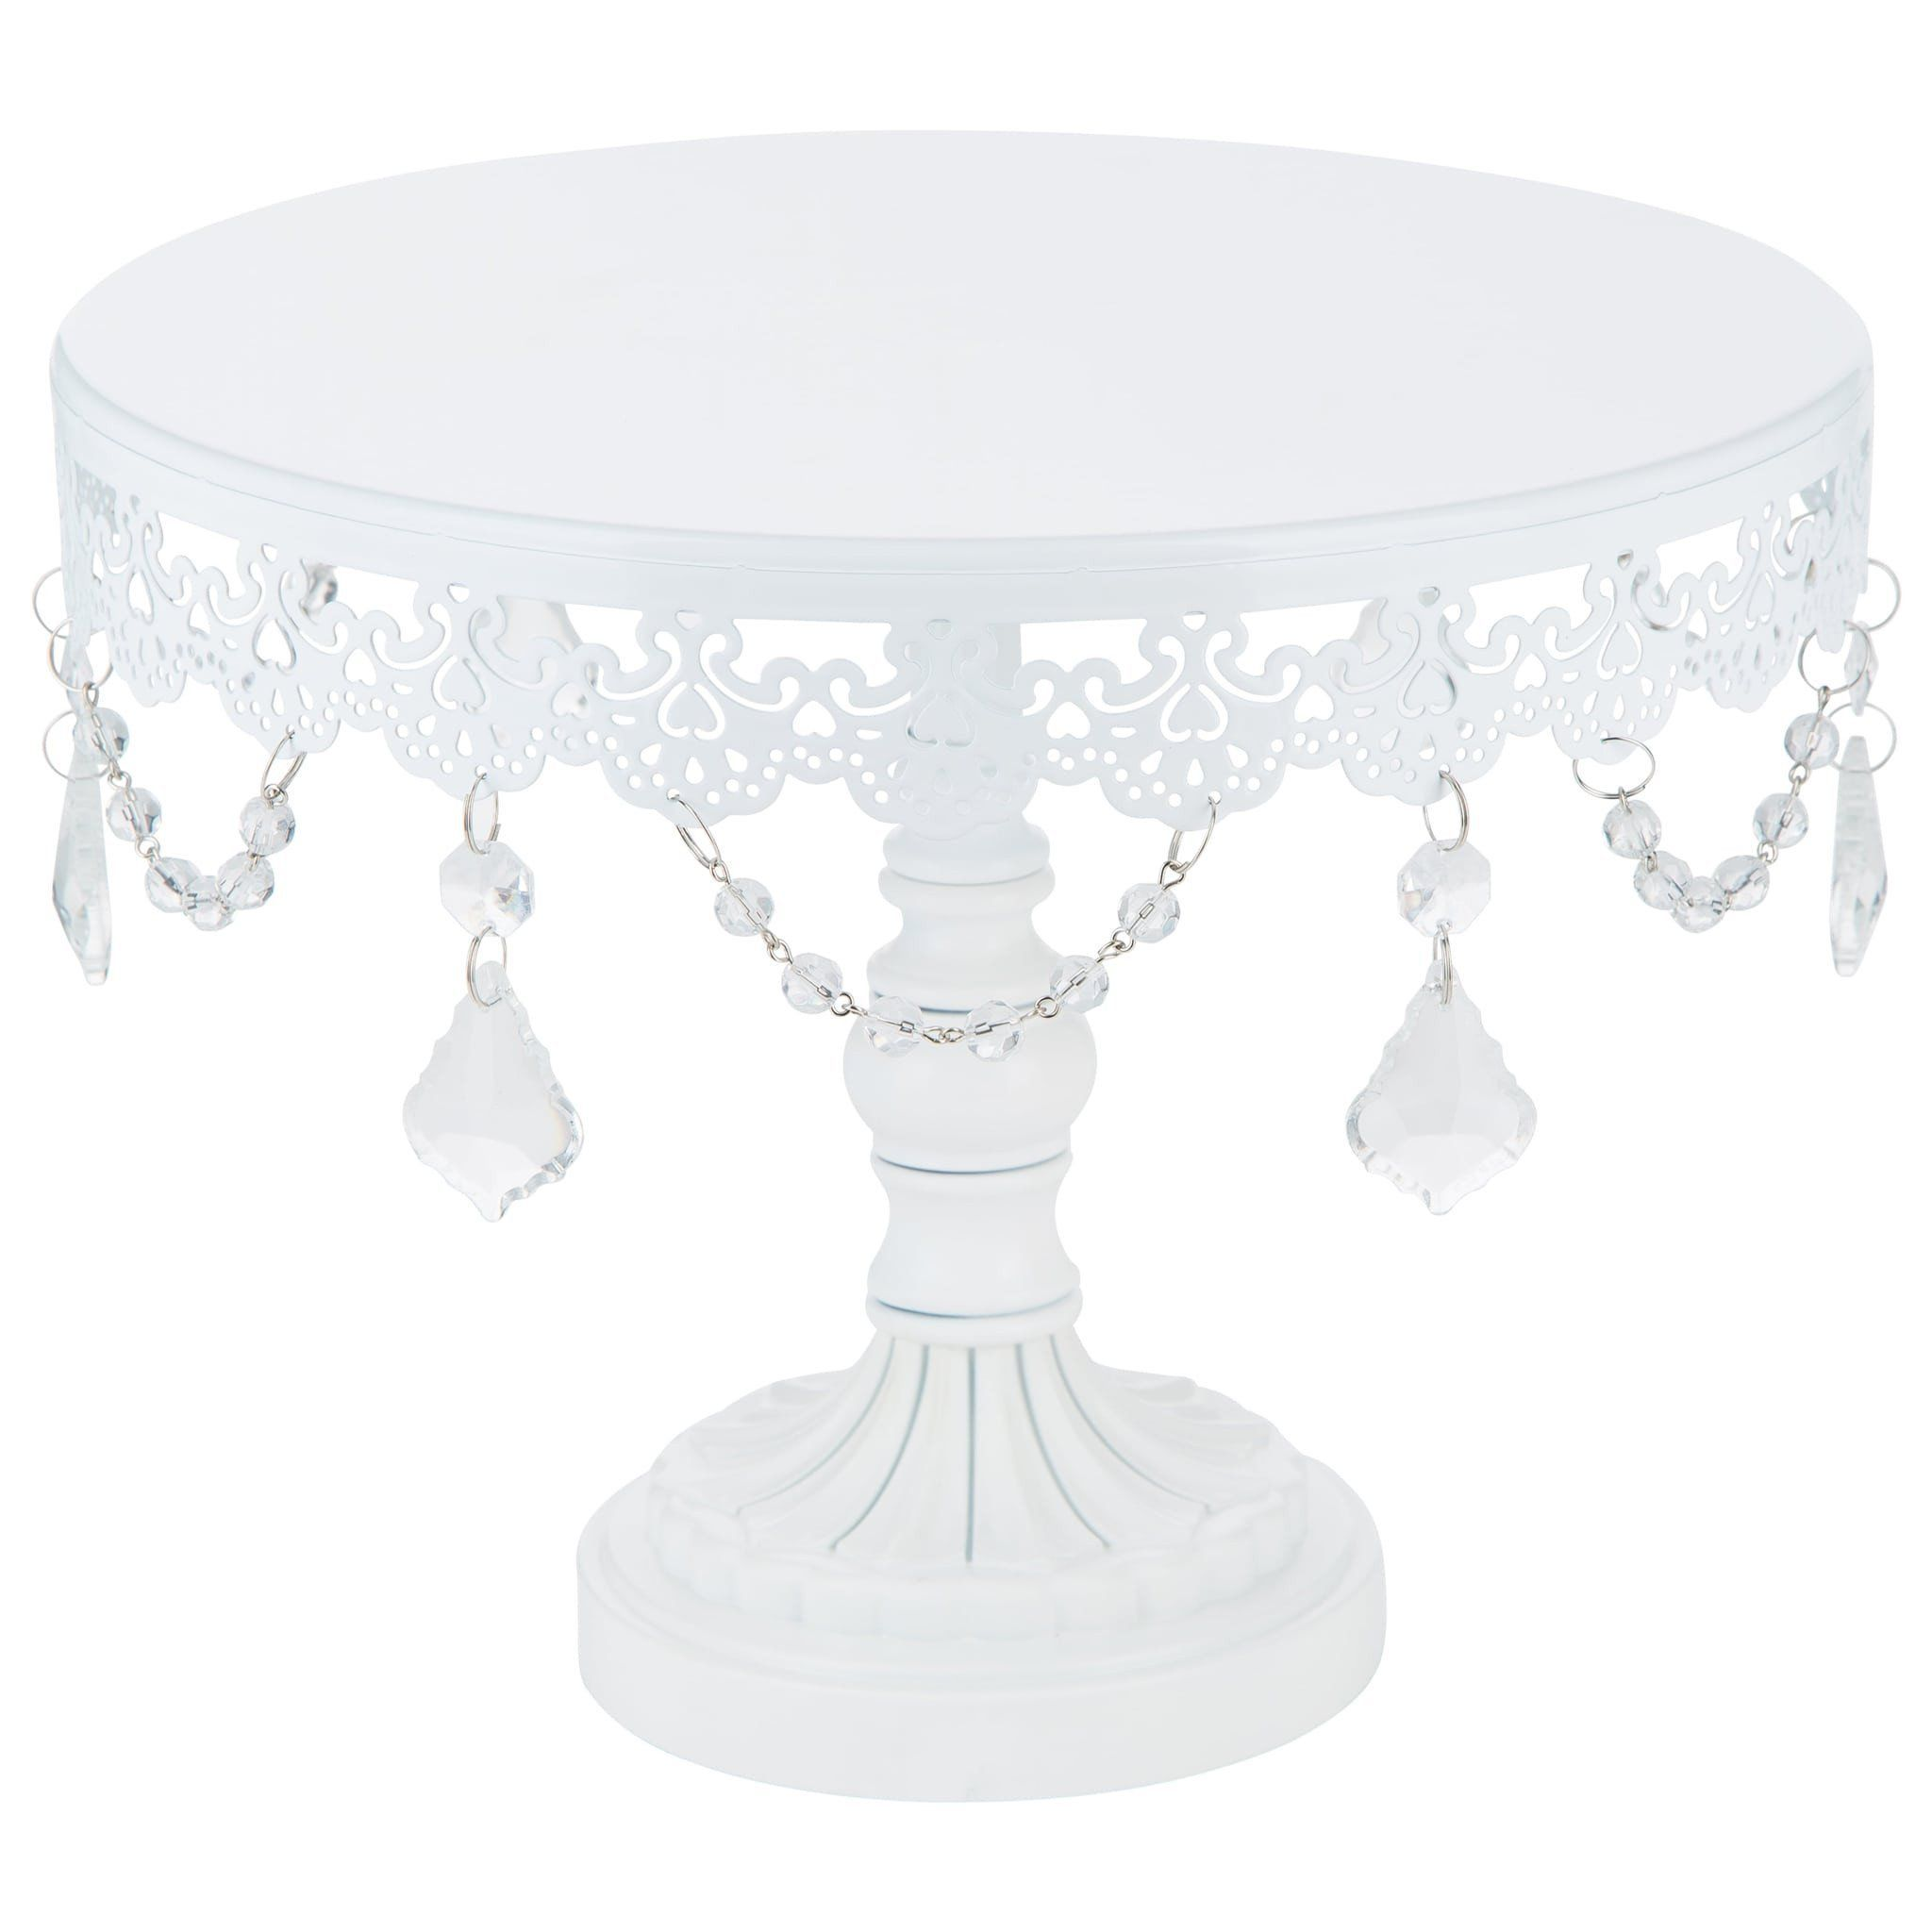 inch crystaldraped round metal cake stand white pinterest